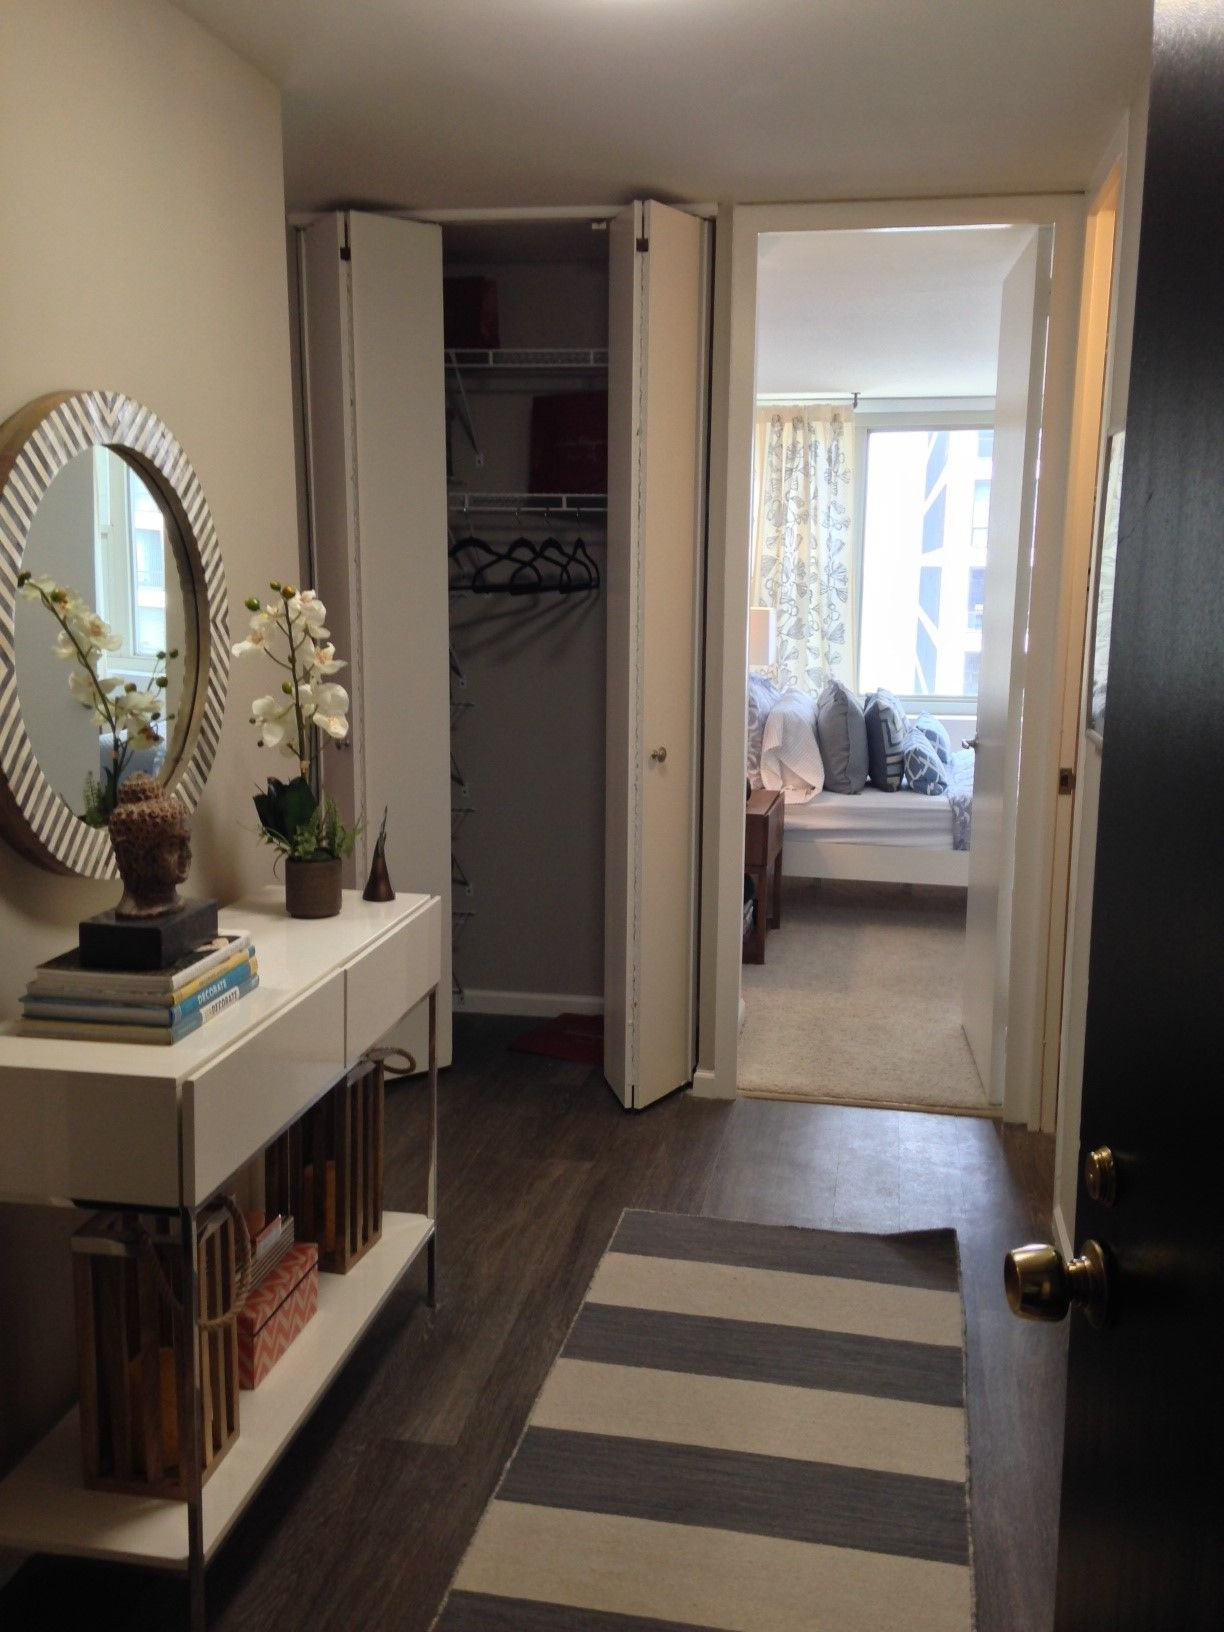 Gold Coast City Apartments Is A Luxury Apartment Community In The Gold  Coast Neighborhood Of Downtown